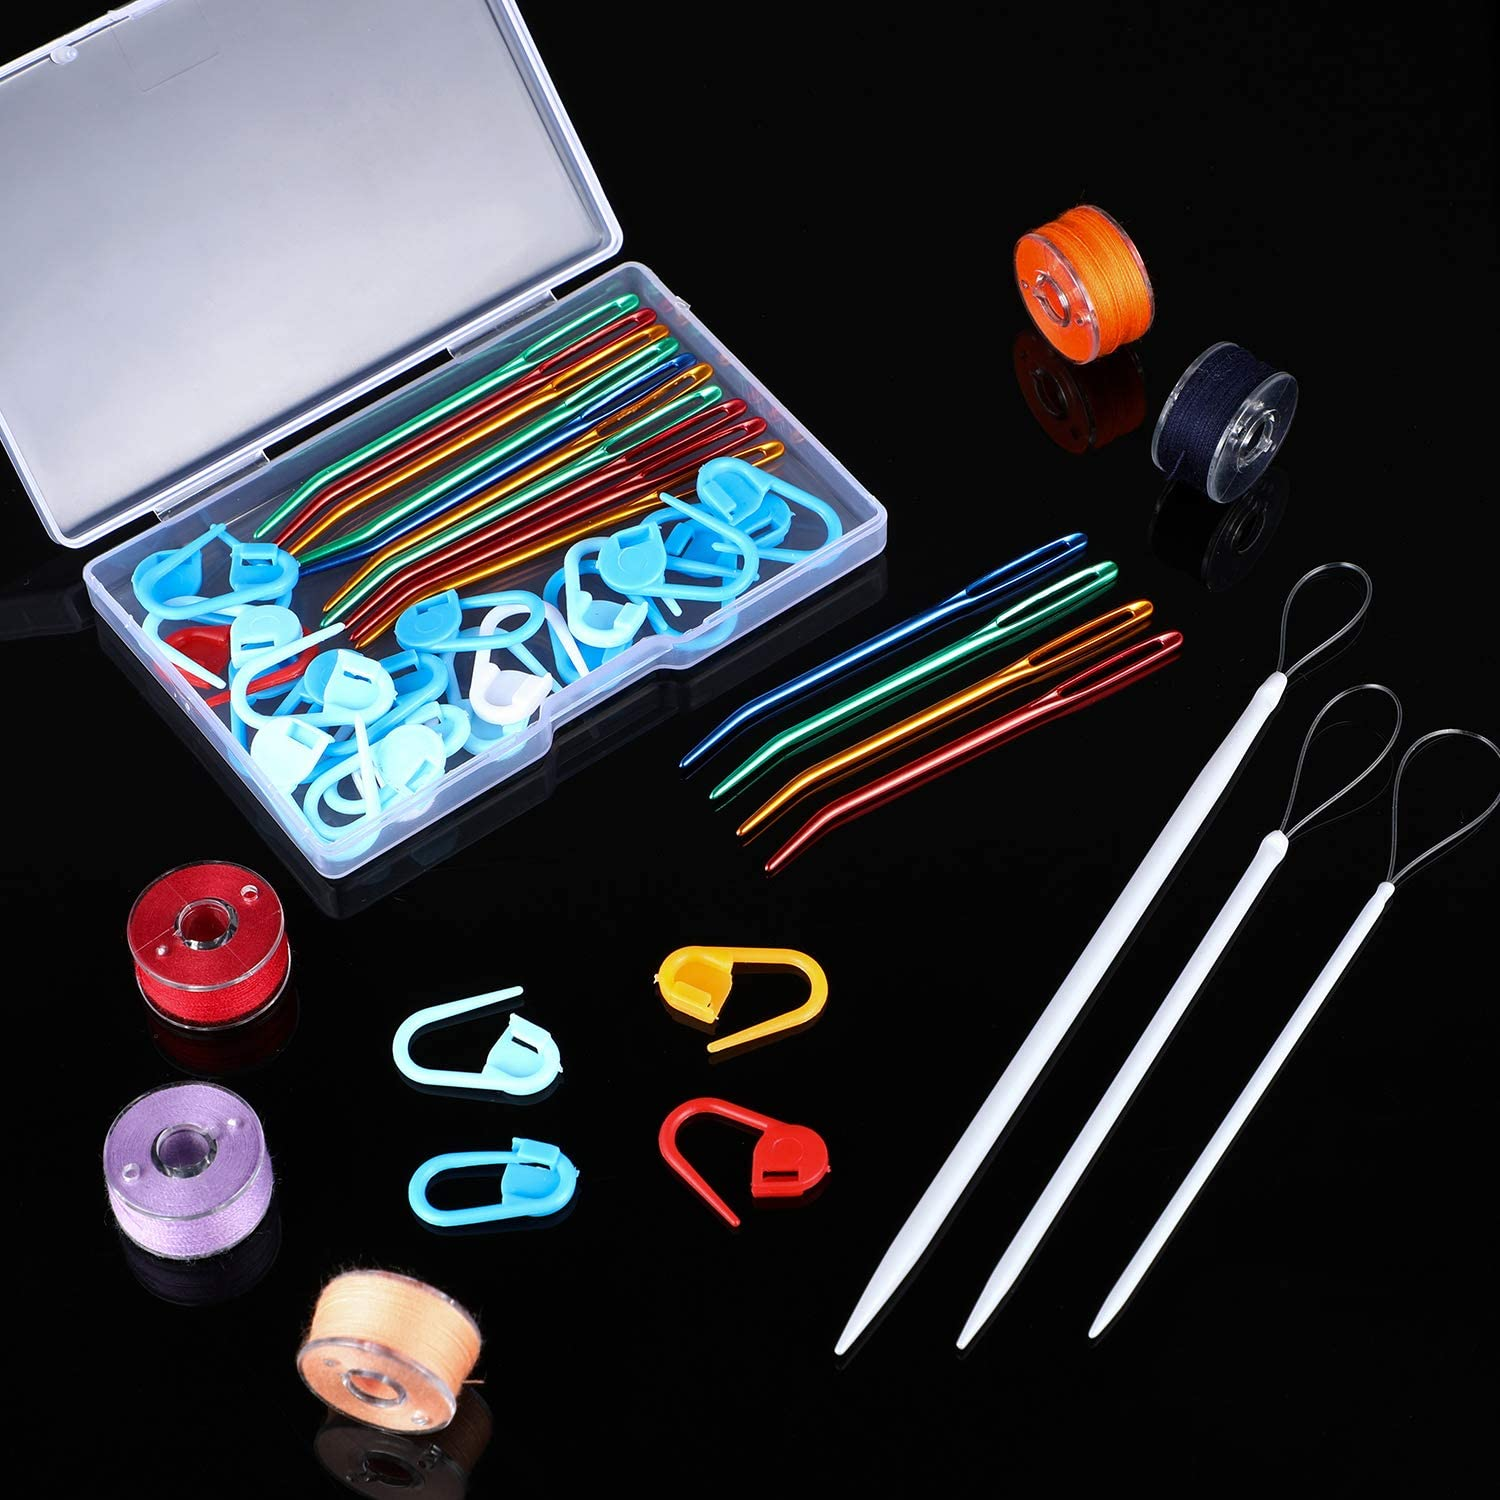 15 Pieces Yarn Needle Set Large Eye Needles Bent Tip Tapestry Needles Wool Needle Sewing Needles with 25 Pieces Plastic Stitch Markers for Weaving Knitting Projects